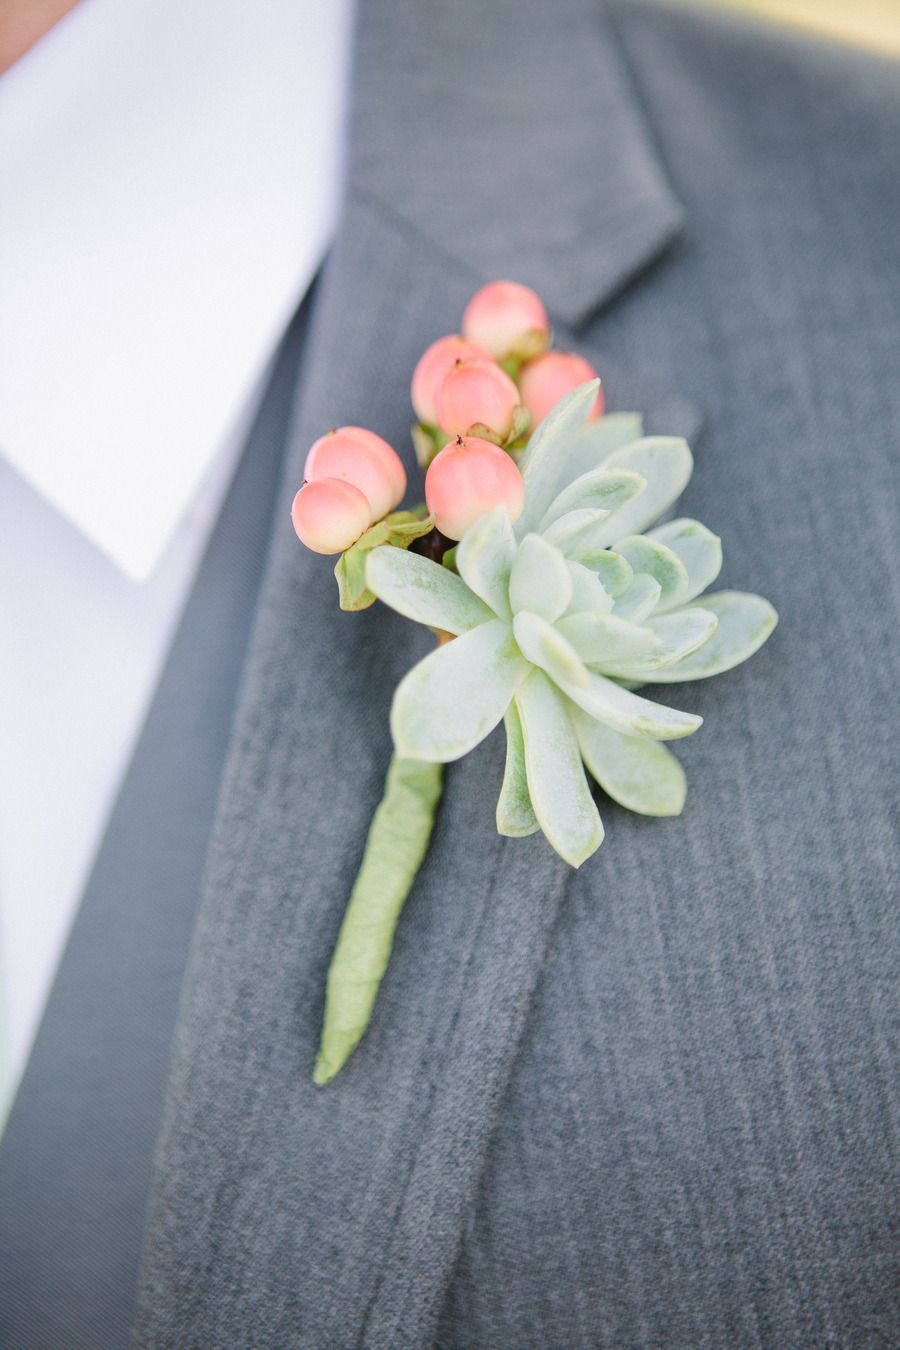 Hypericum Berries /Succulent boutonniere - Burleson, Texas Wedding from Heather Hawkins Photography